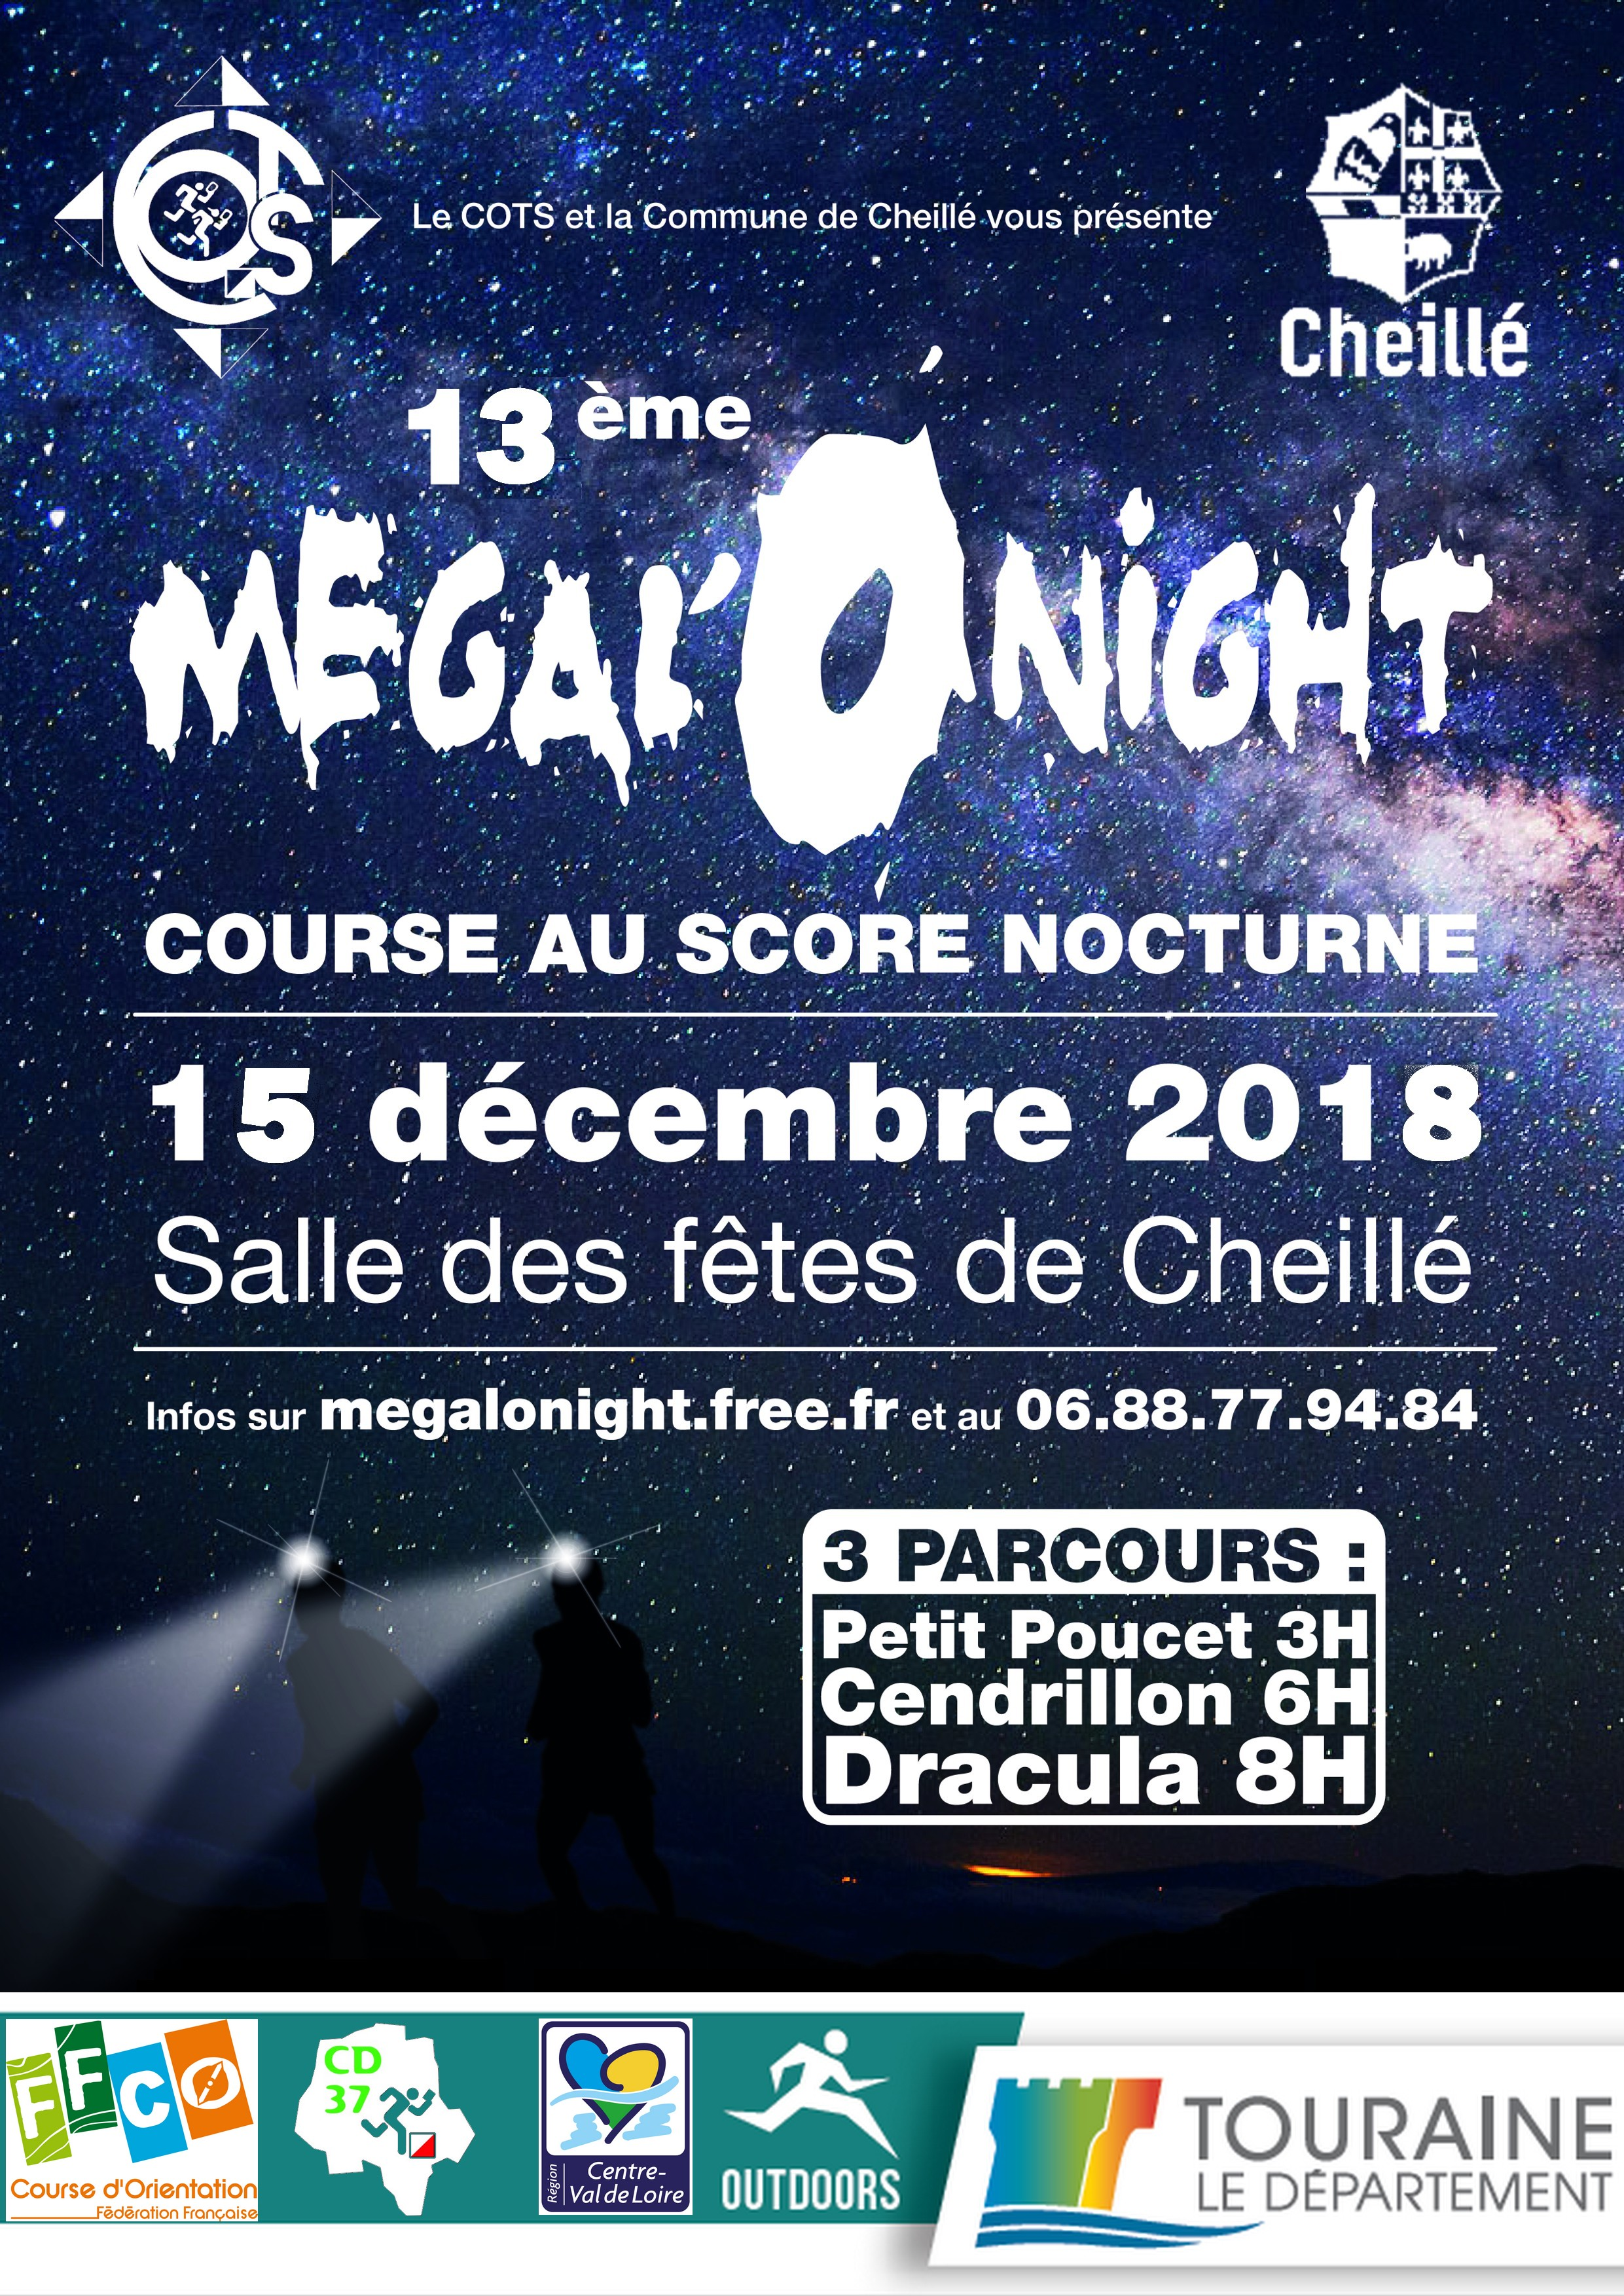 Affiche_2018_MeegalO_Night-A4.jpg